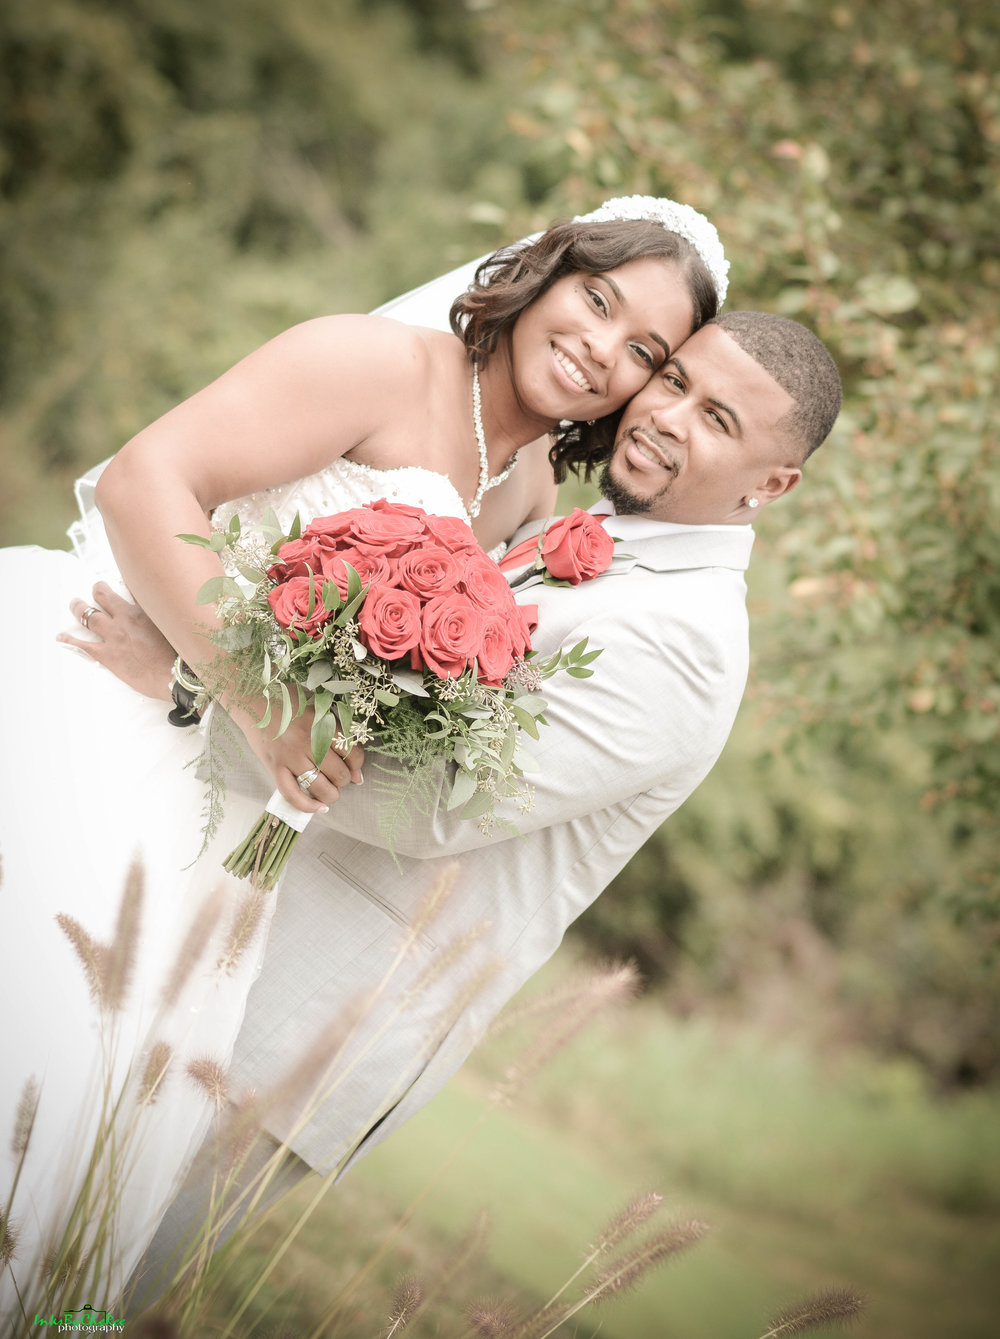 RED AND WHITE WEDDING - DAYTON WEDDING - DAYTON WEDDING COORDINATOR